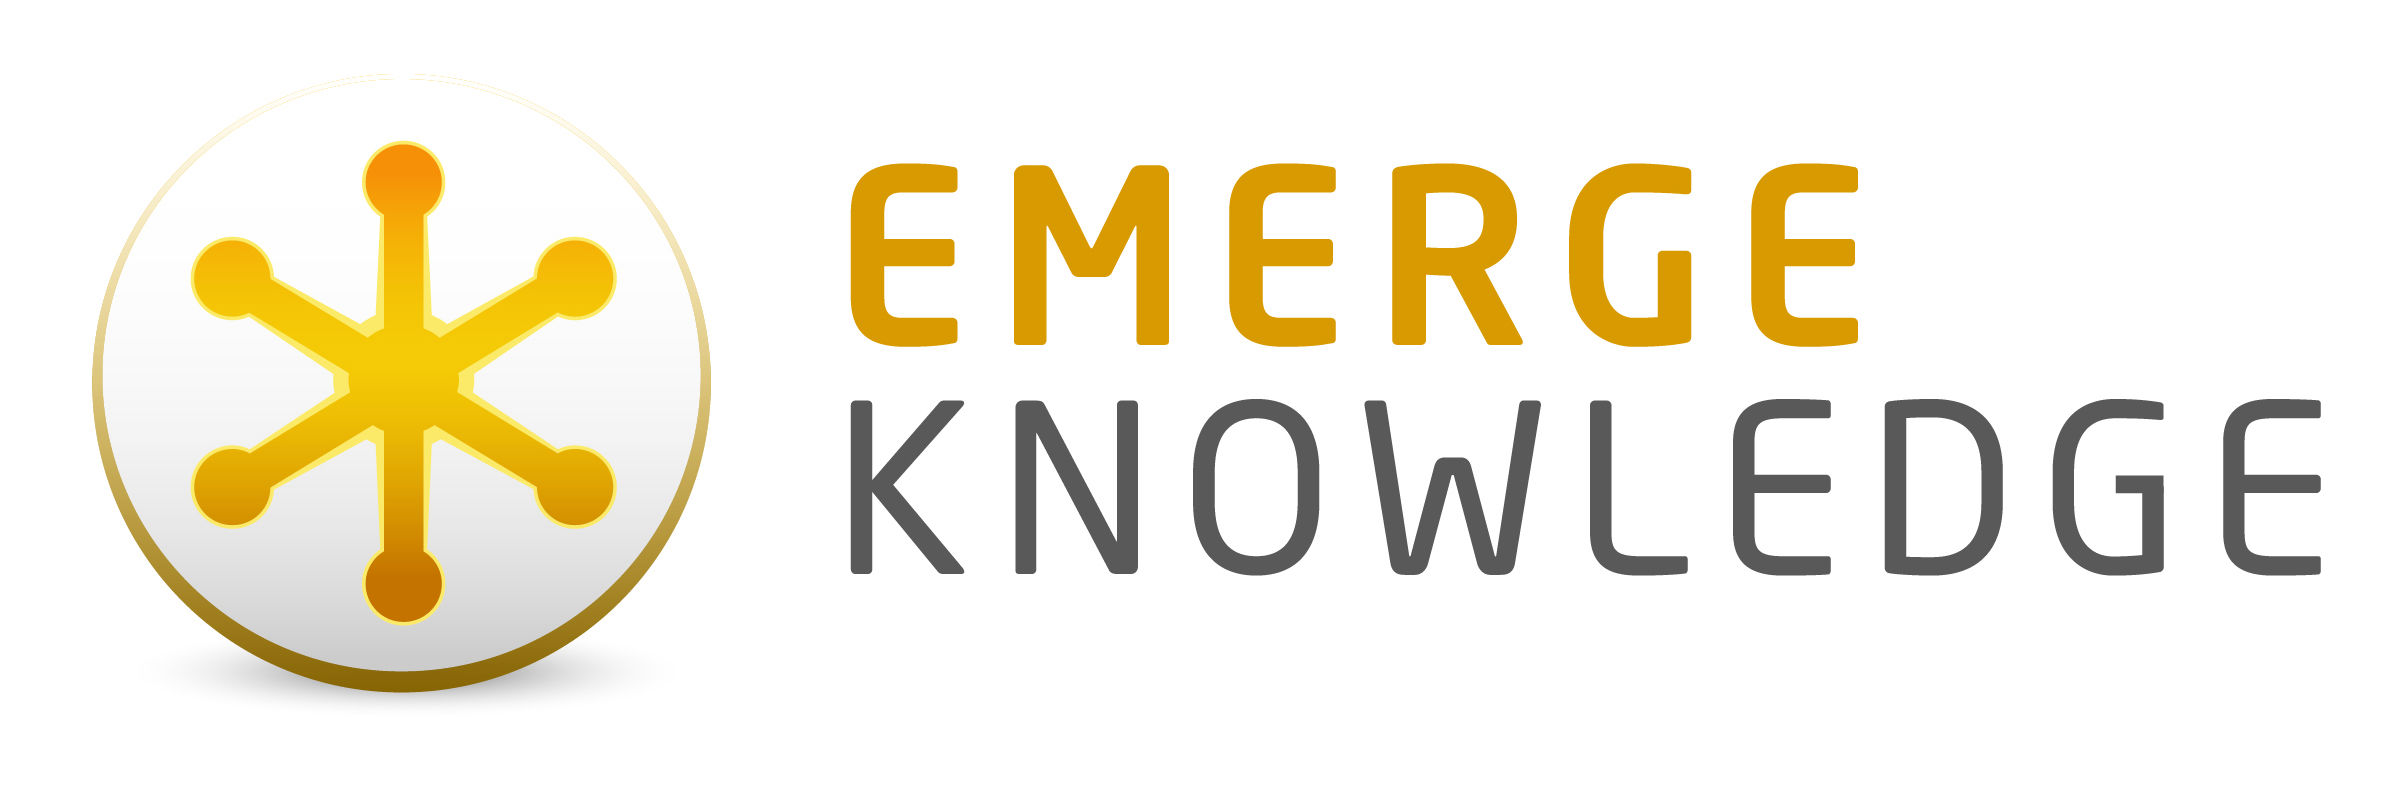 Emerge Knowledge company